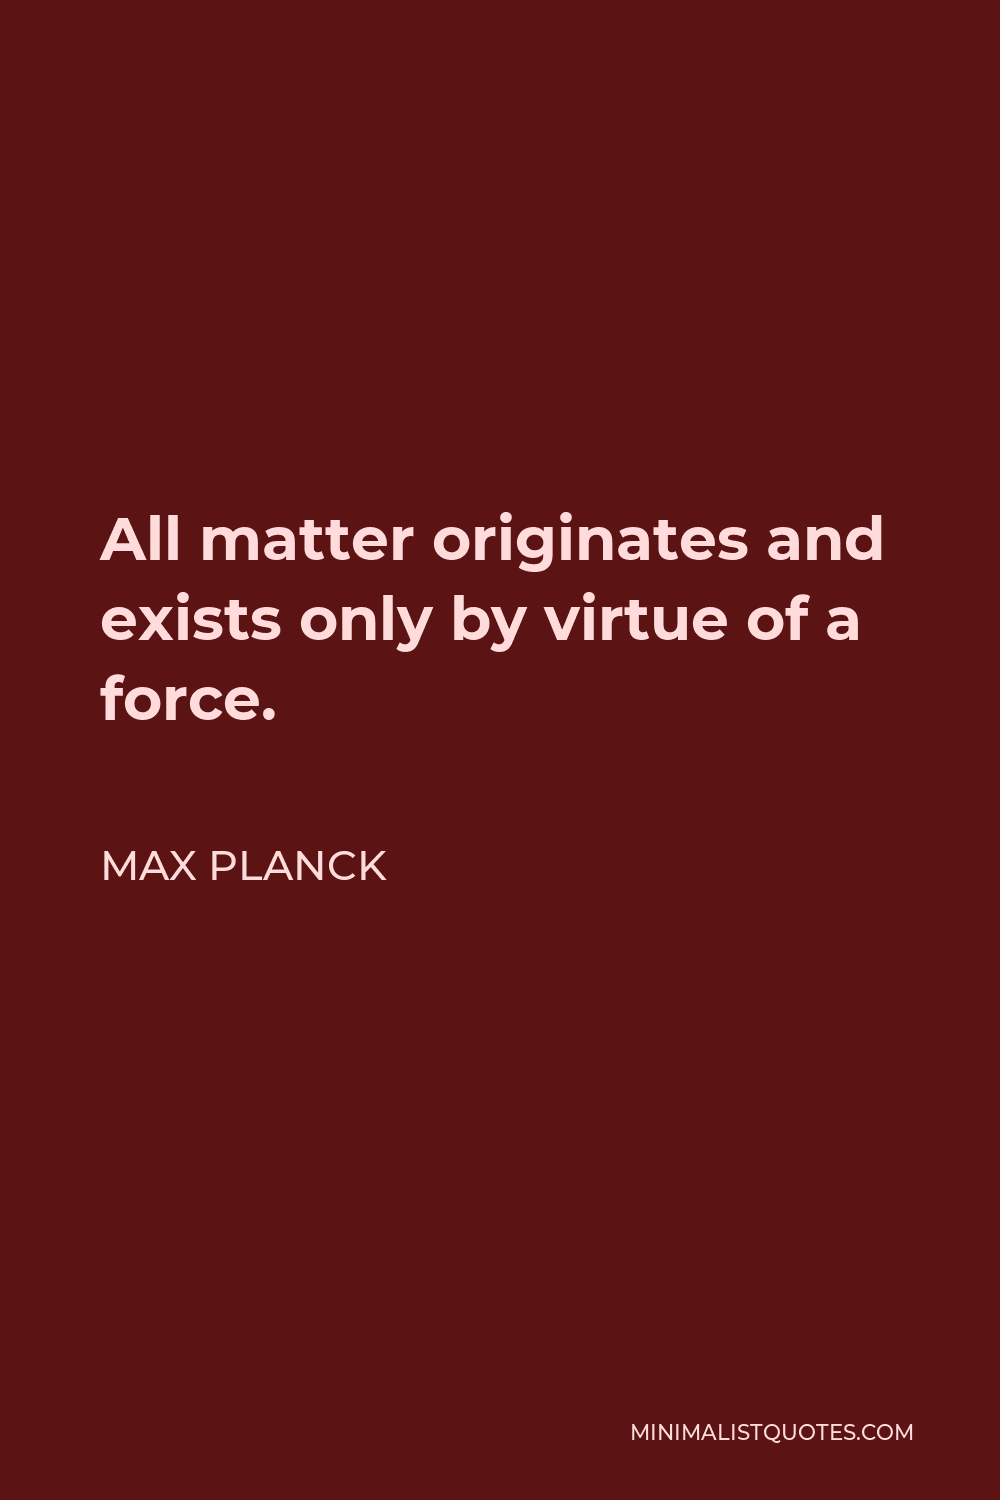 Max Planck Quote - All matter originates and exists only by virtue of a force… We must assume behind this force the existence of a conscious and intelligent Mind. This Mind is the matrix of all matter.